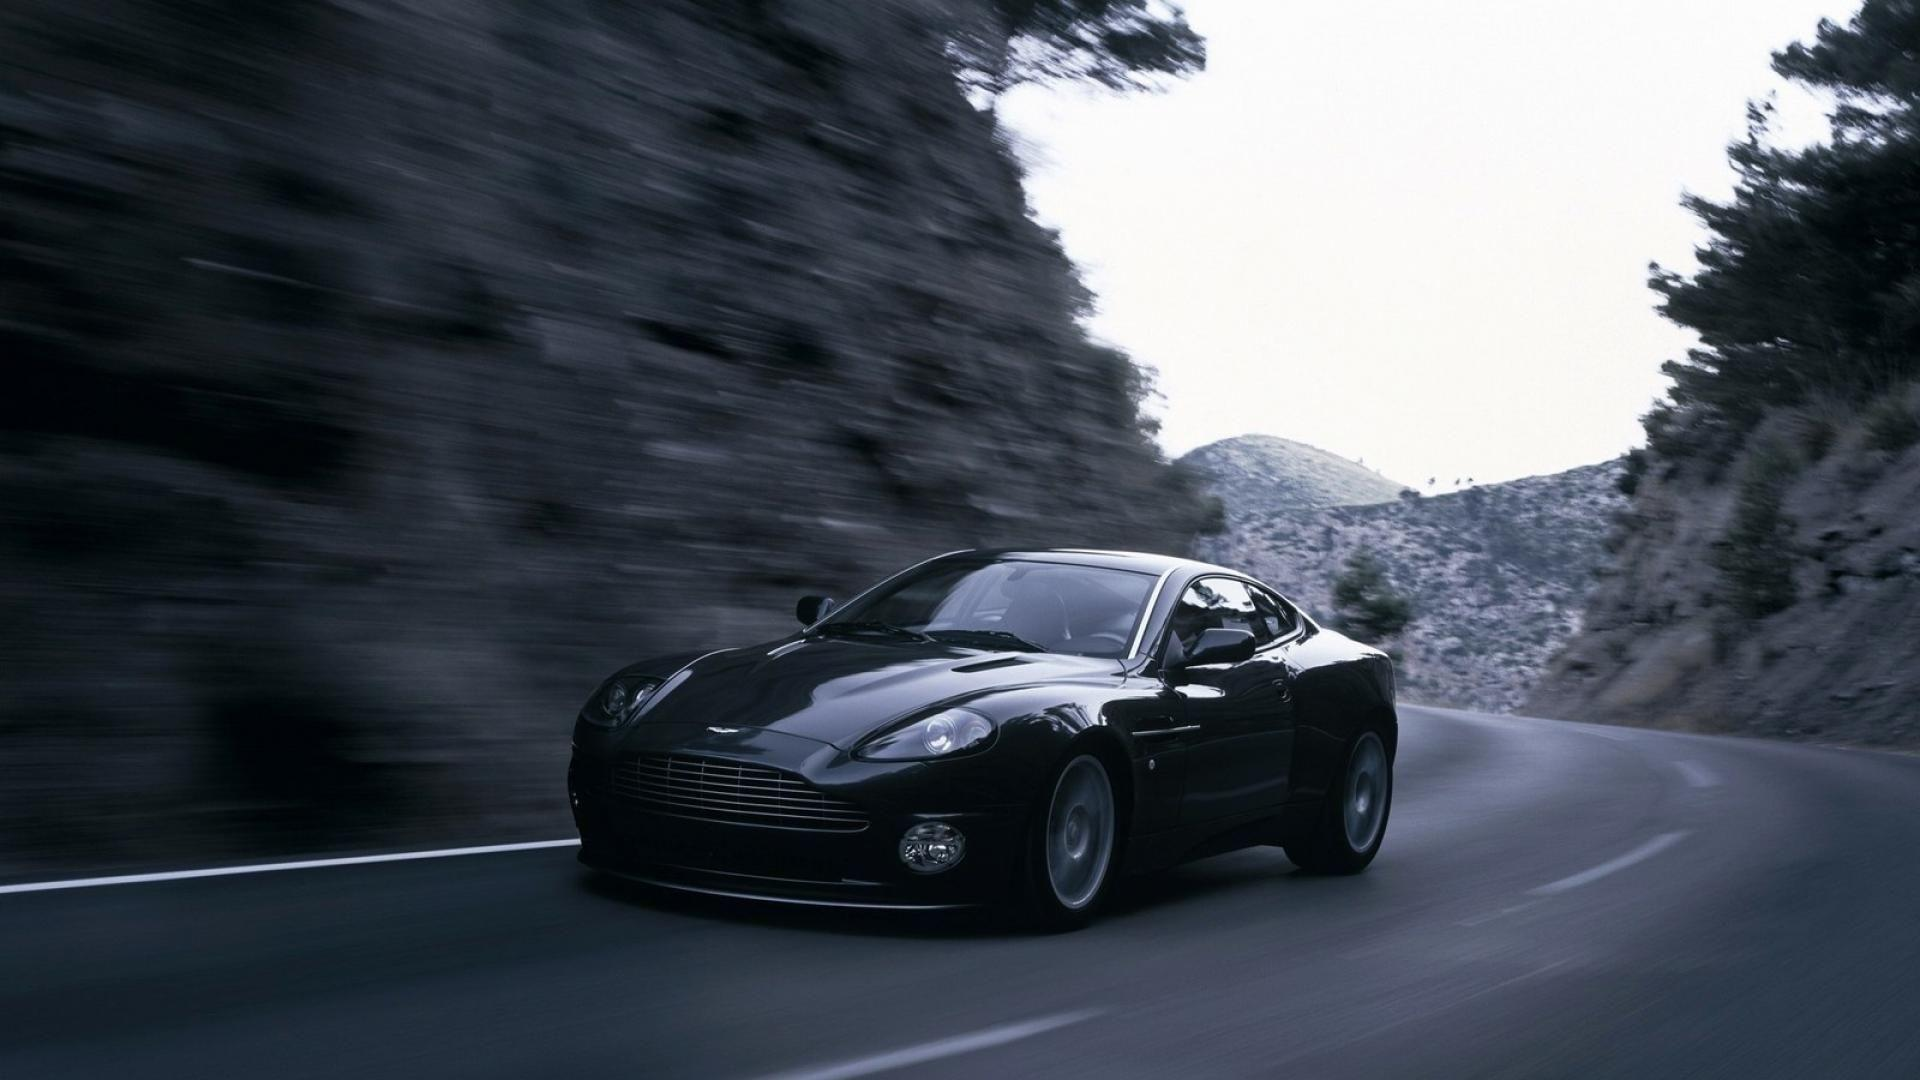 Aston Martin Vanquish Wallpapers